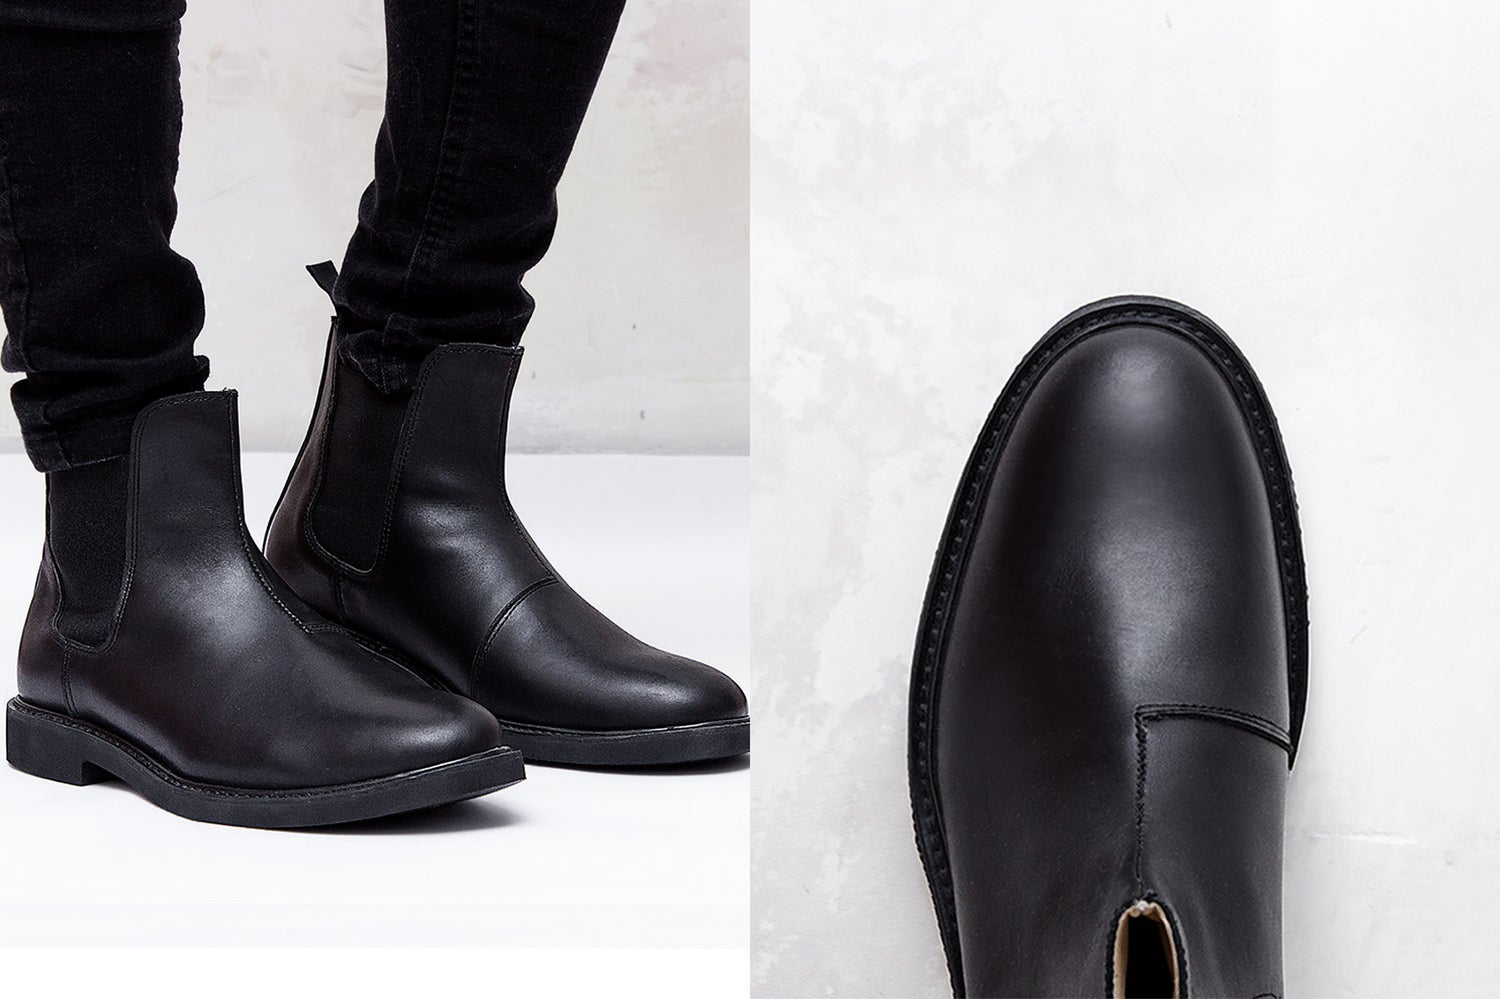 Image of Handmade Shoes | 1301 Chelsea Boots